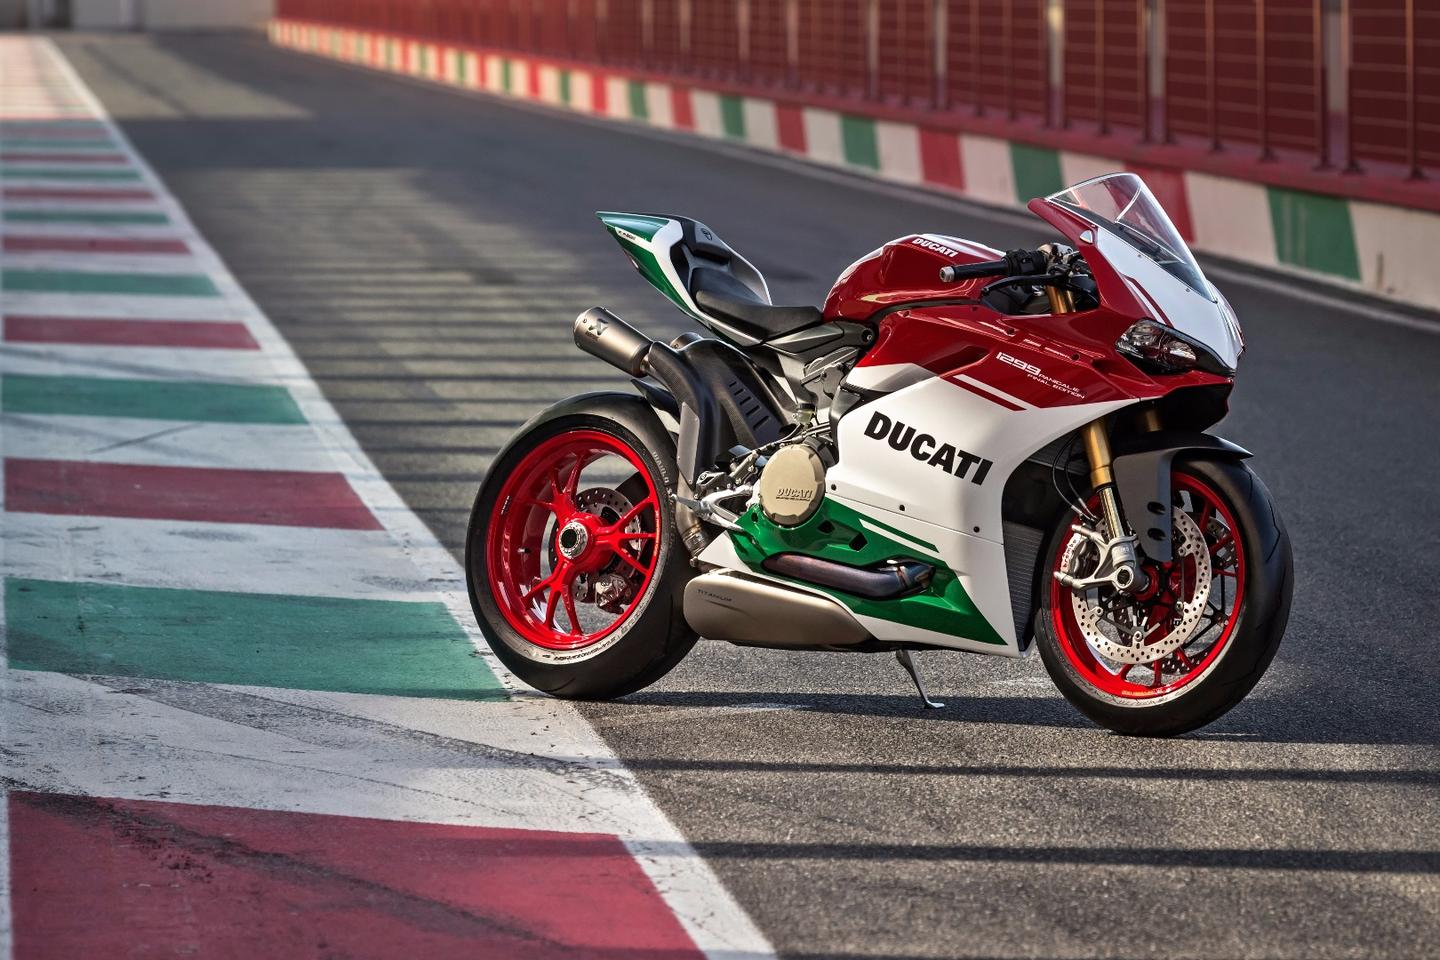 The Ducati 1299 Panigale R Final Edition fuses the running gear of the Panigale R with the engine of the Superleggera